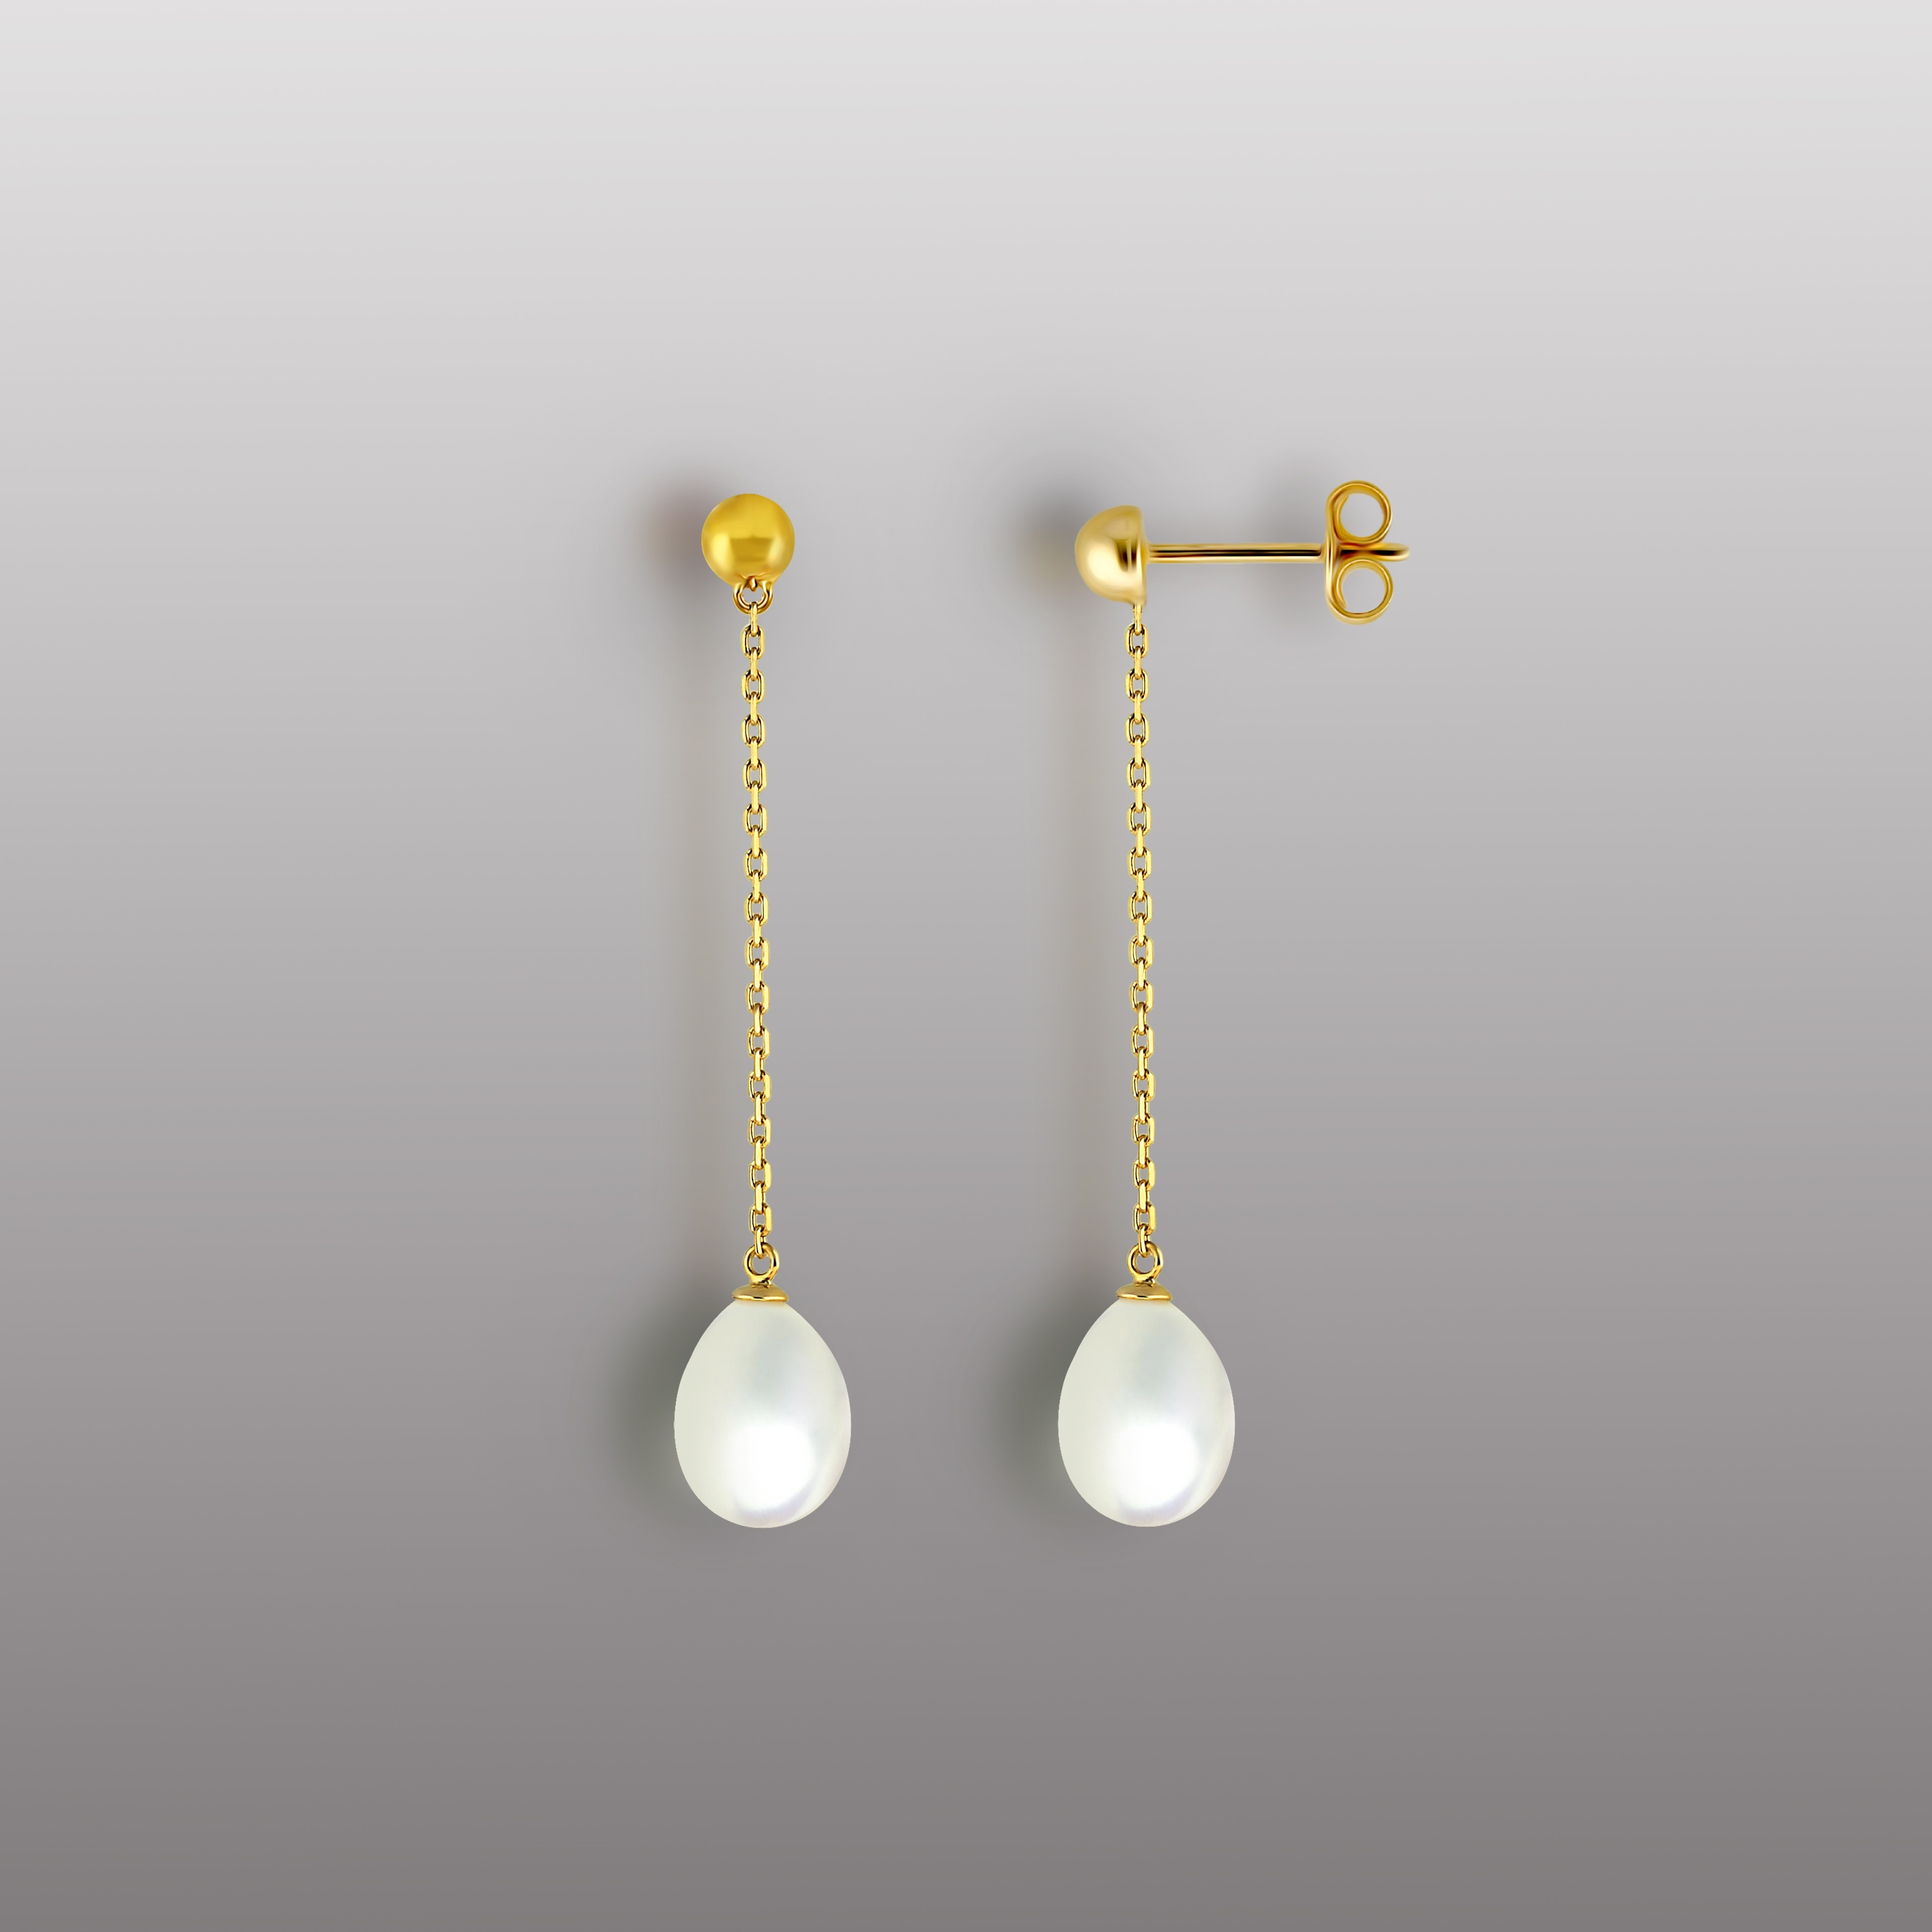 18K YELLOW GOLD EARRING WITH DROP SHAPE PEARL-RD1913E